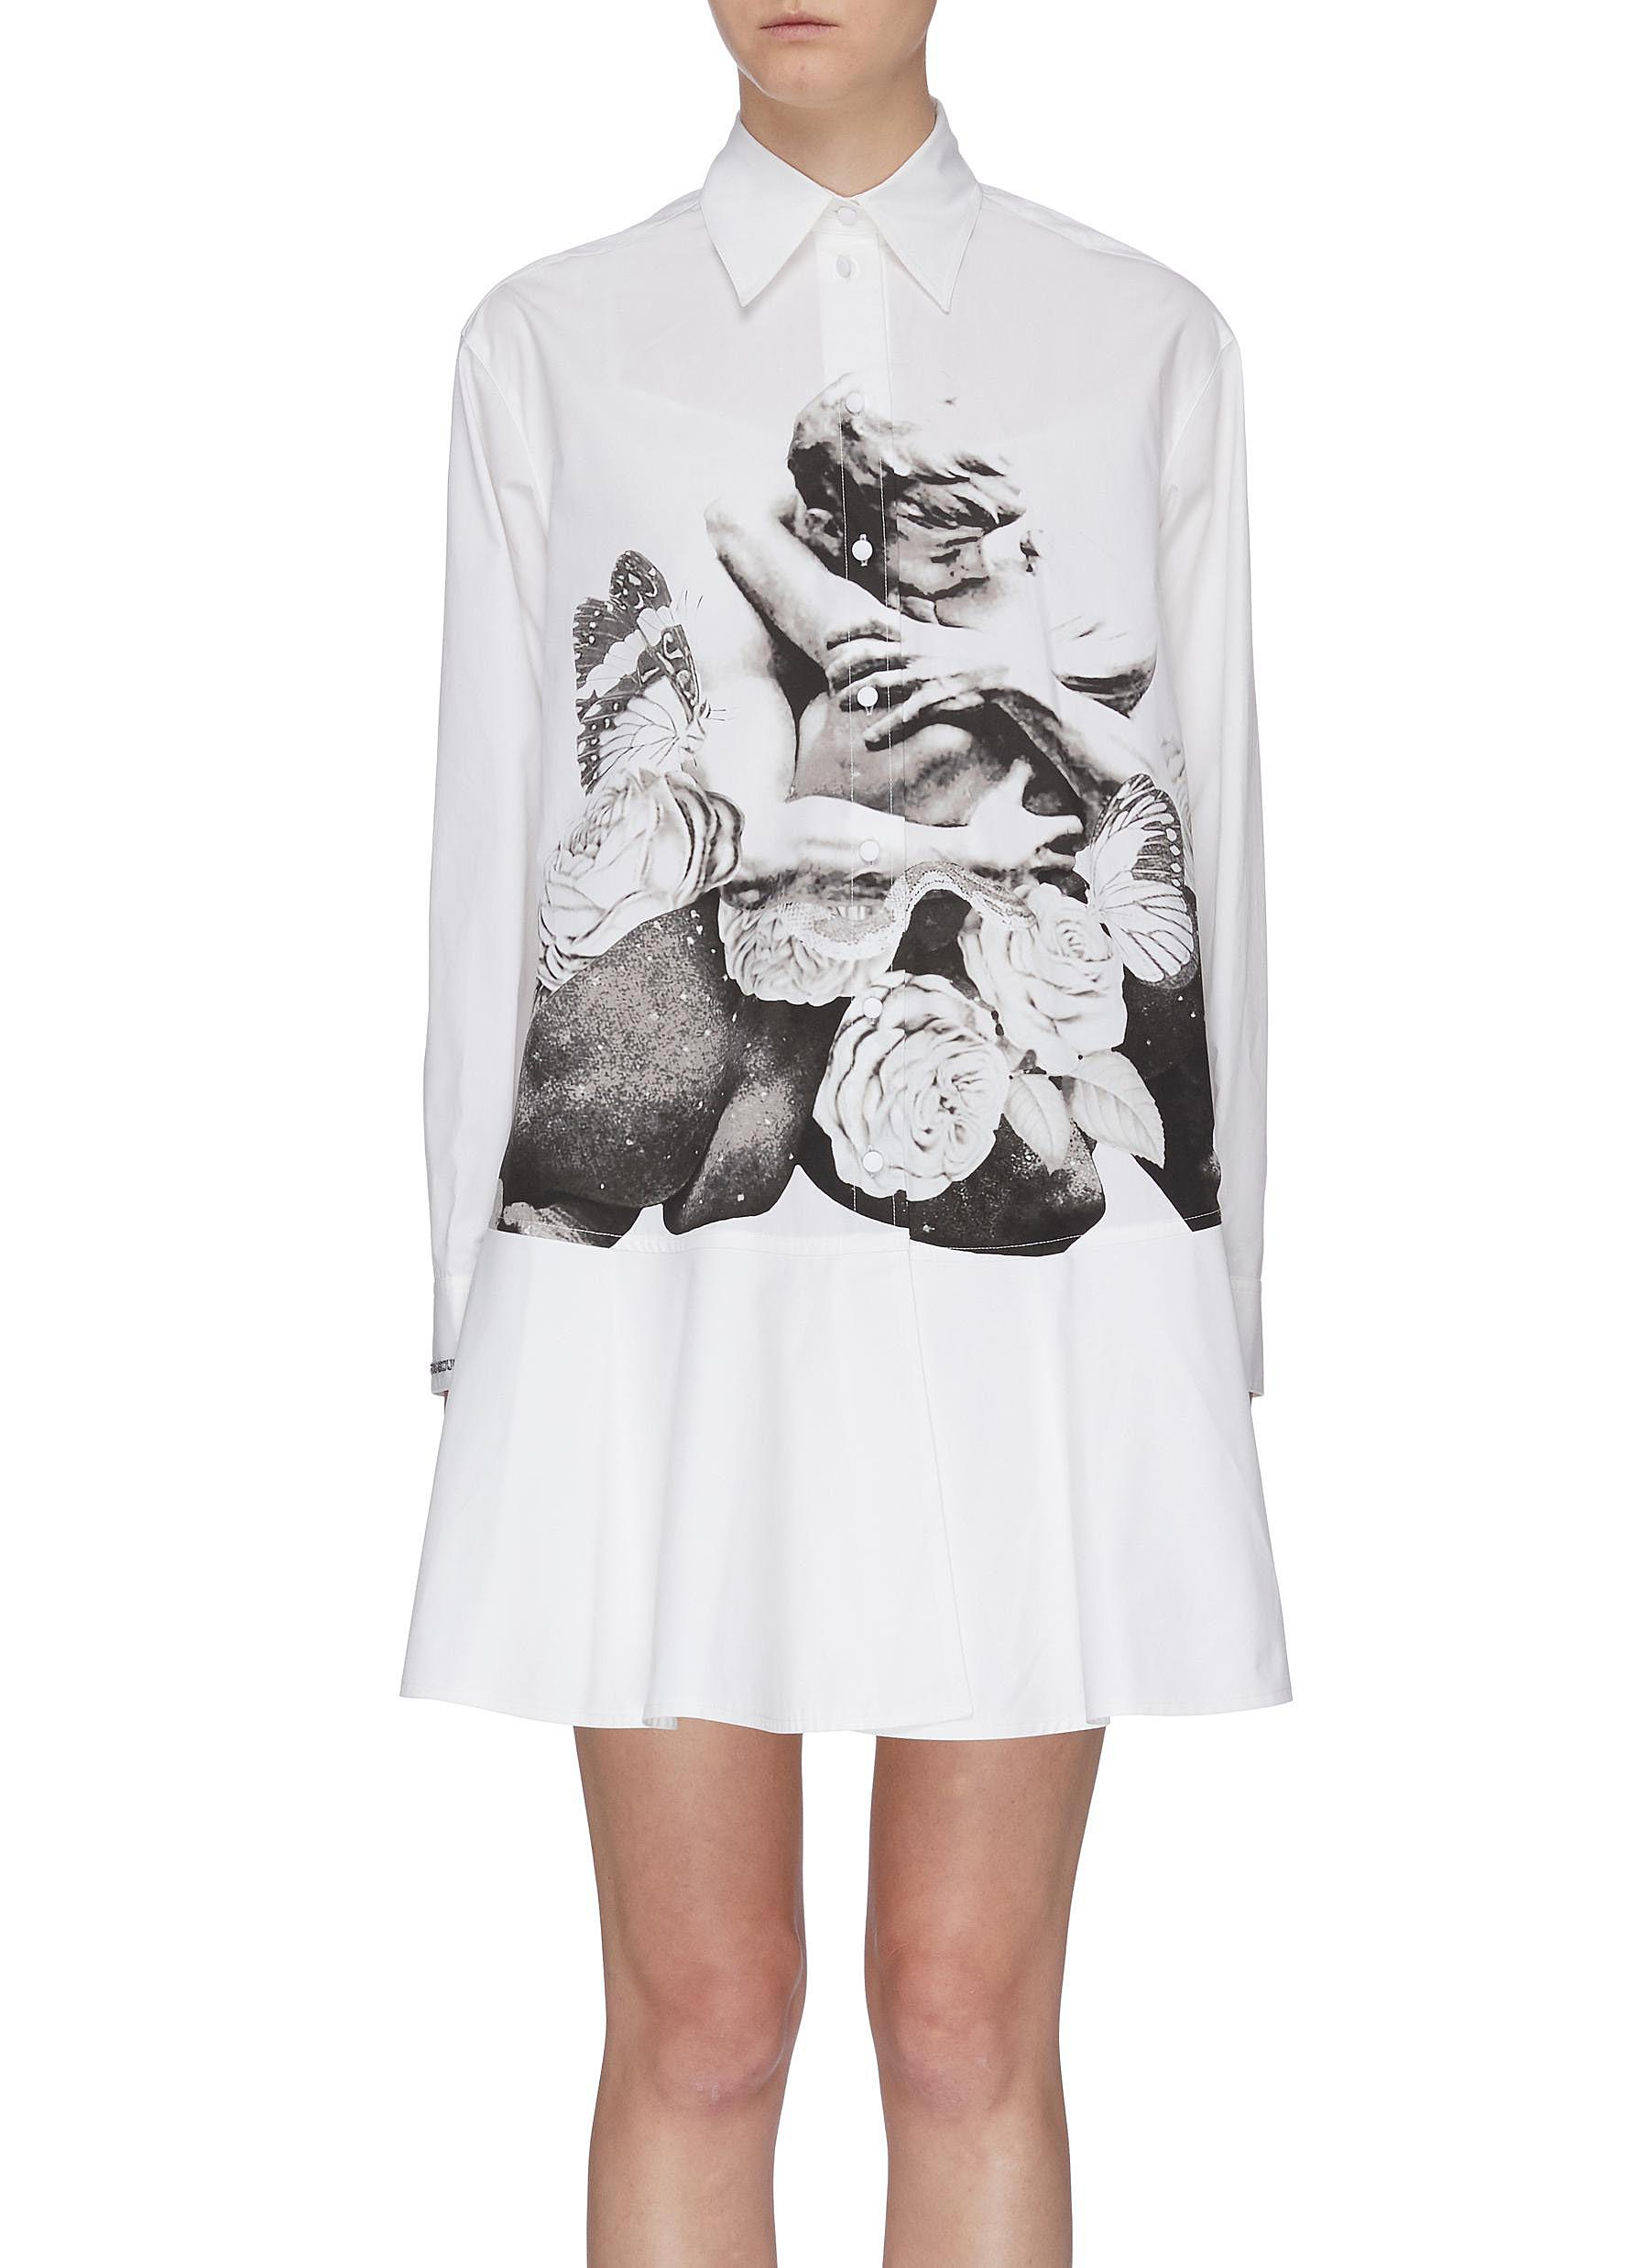 Lovers print peplum shirt dress by Valentino